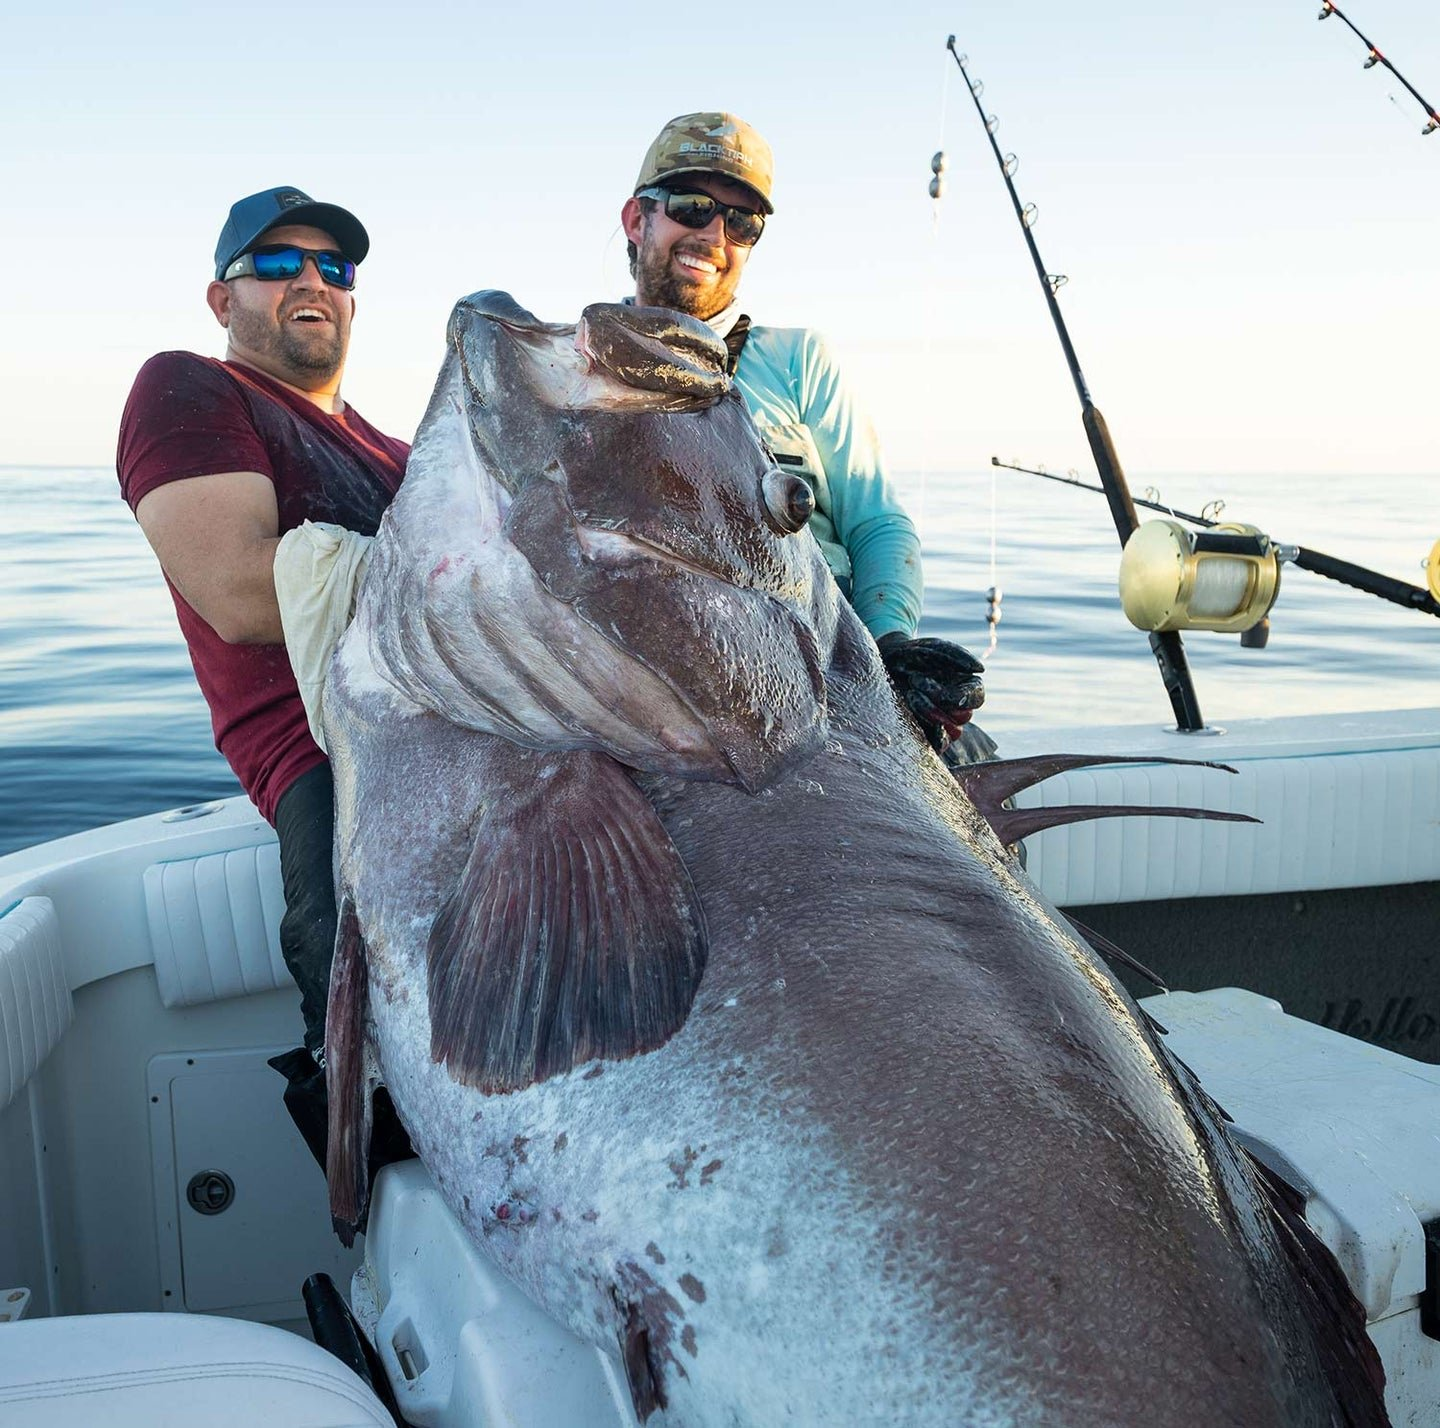 This 300-pound grouper went toe-to-toe with four grown men